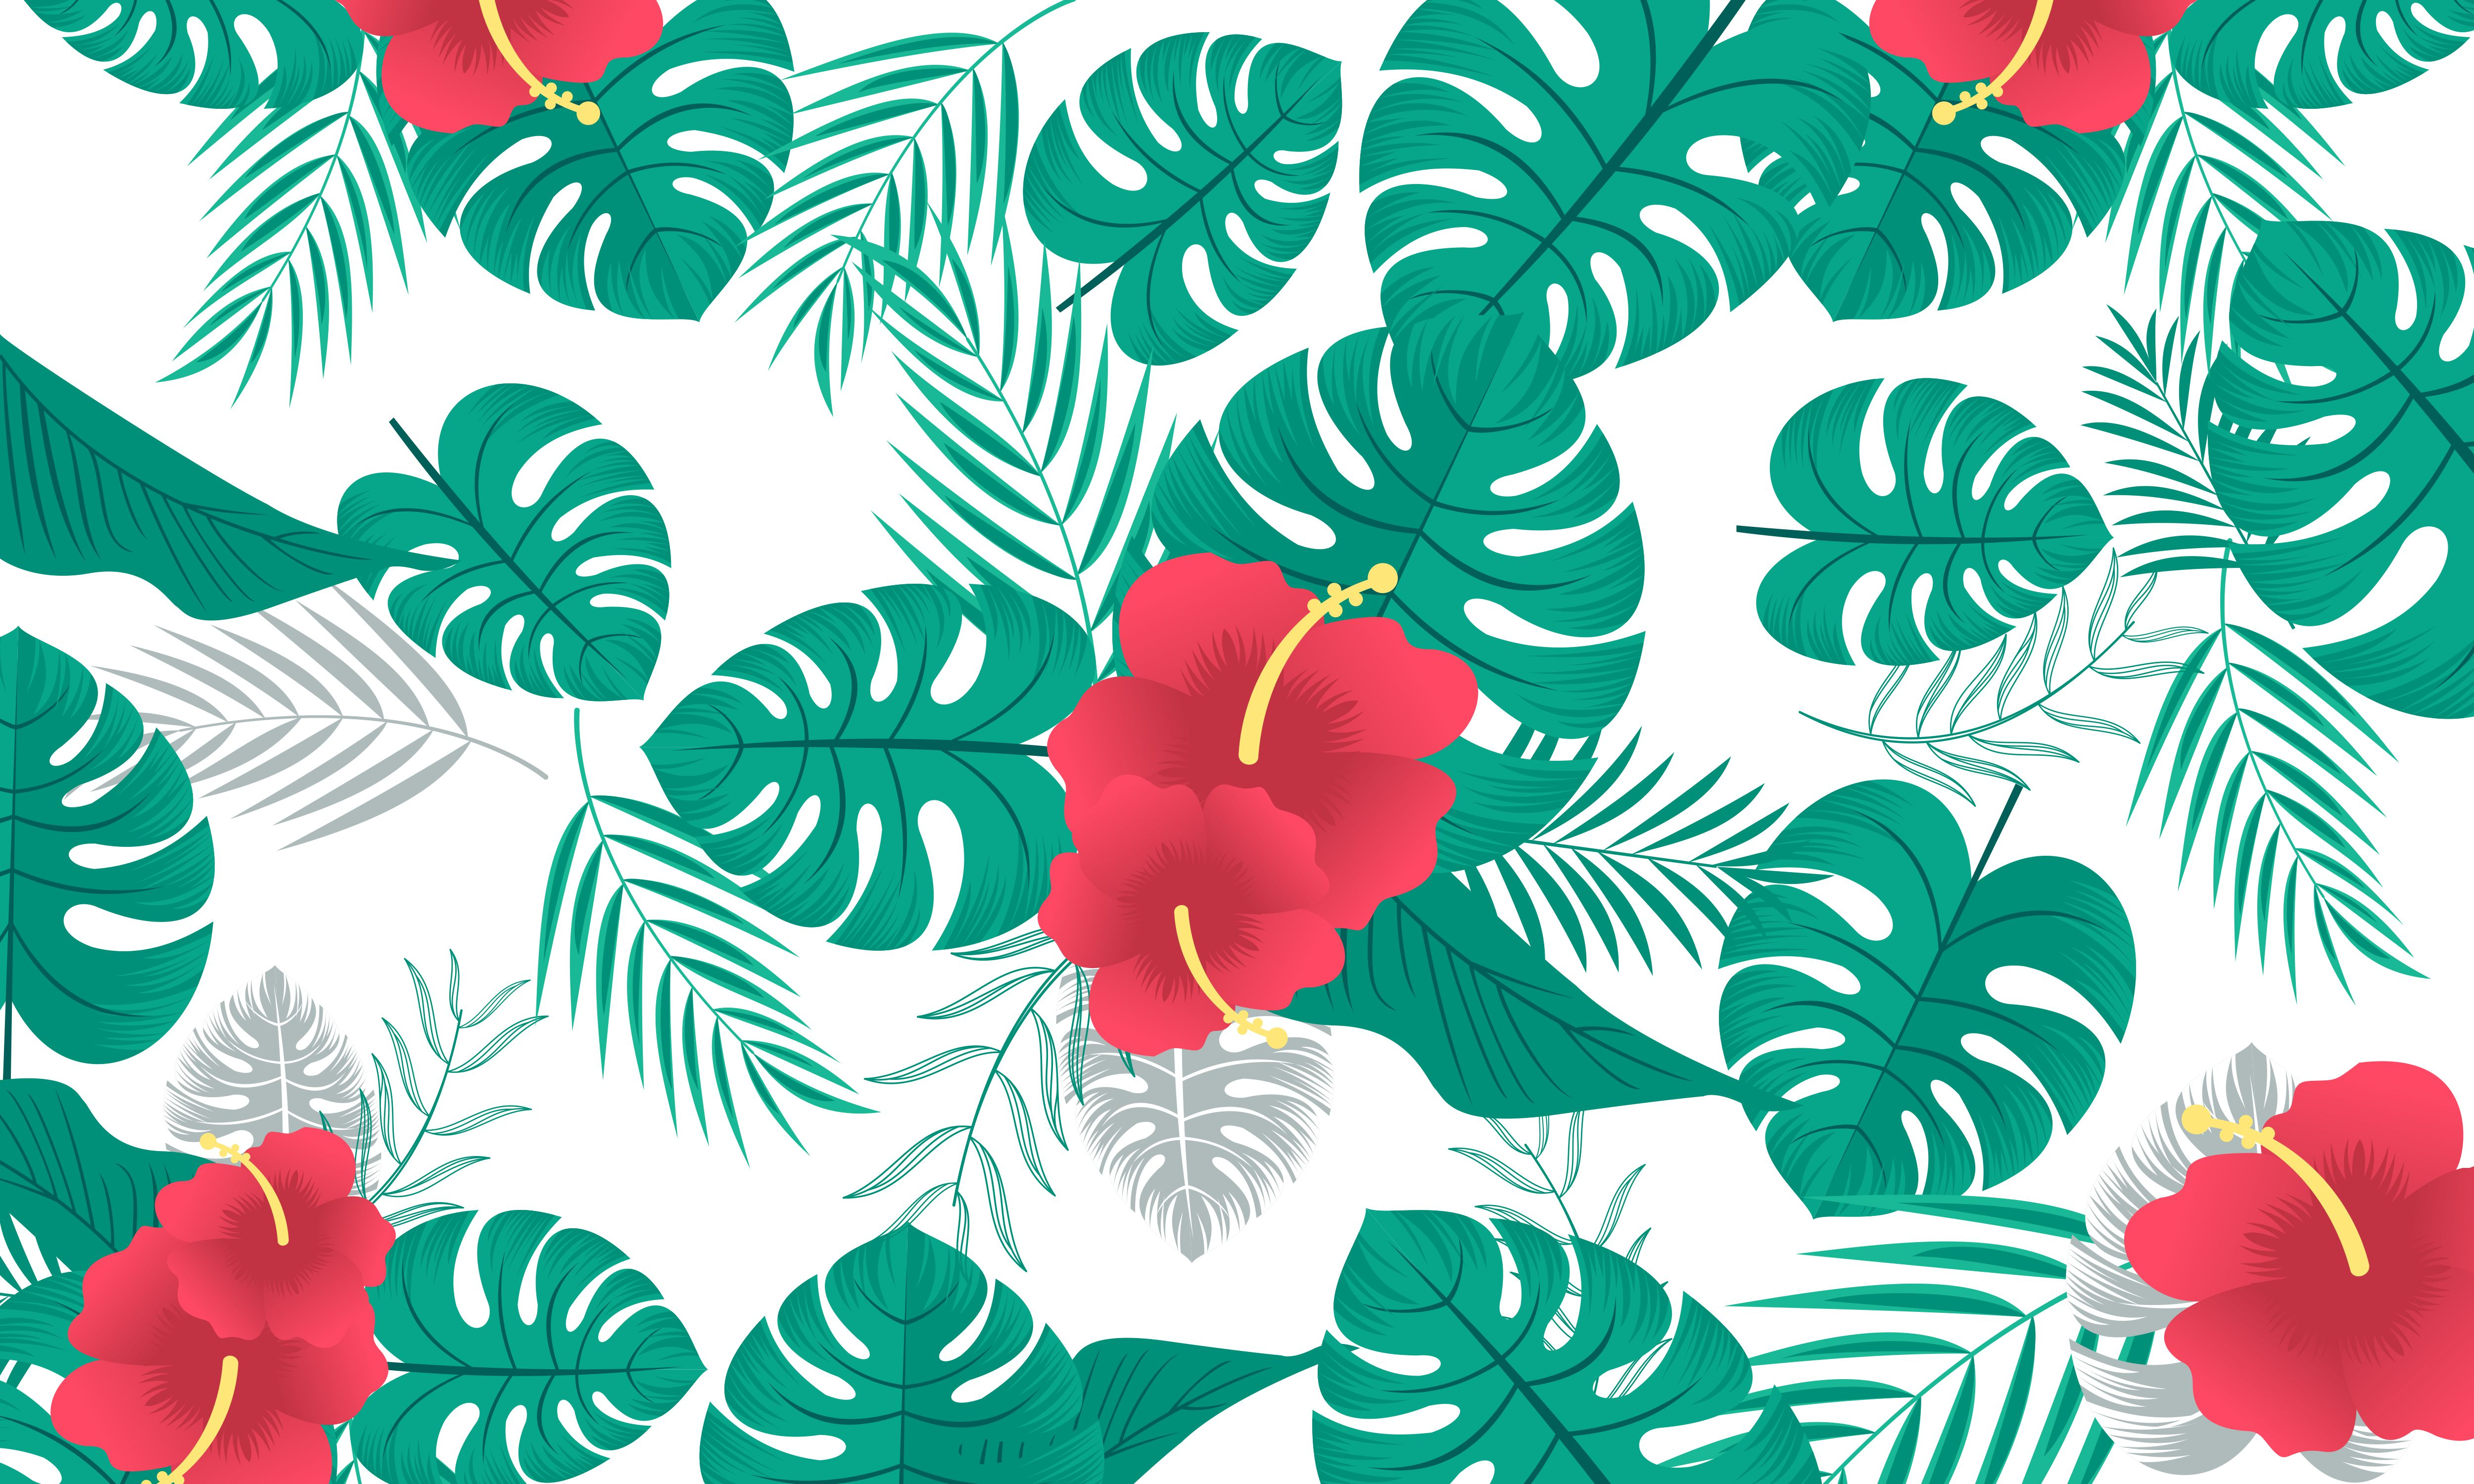 Download Free Pattern With Tropical Flowers And Leaves Graphic By Deemka for Cricut Explore, Silhouette and other cutting machines.